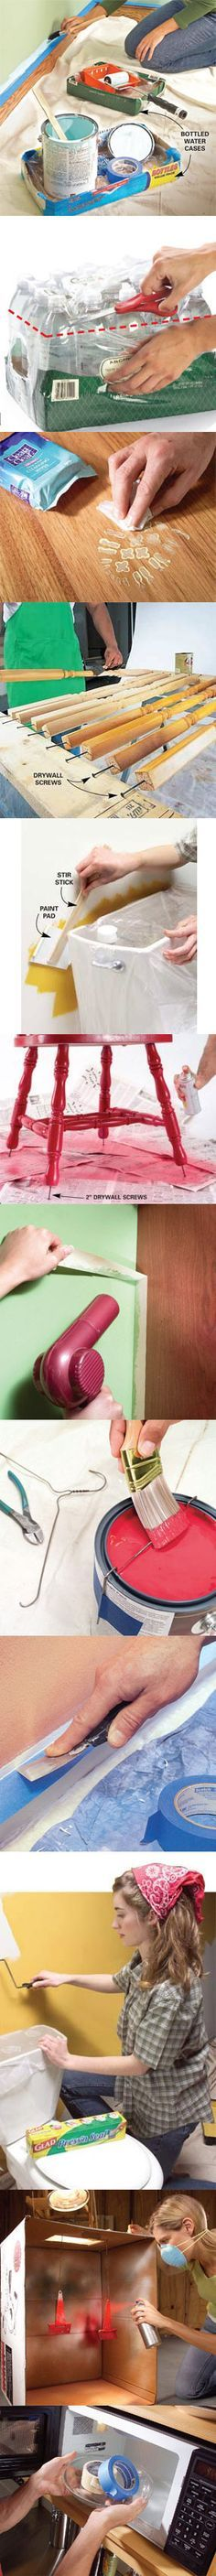 These easy tips will help you minimize the mess while you paint and cut your cleanup time in half. Find all 11 mess-free painting tips at http://www.familyhandyman.com/DIY-Projects/Painting/Painting-Tips/mess-free-painting-tips/View-All